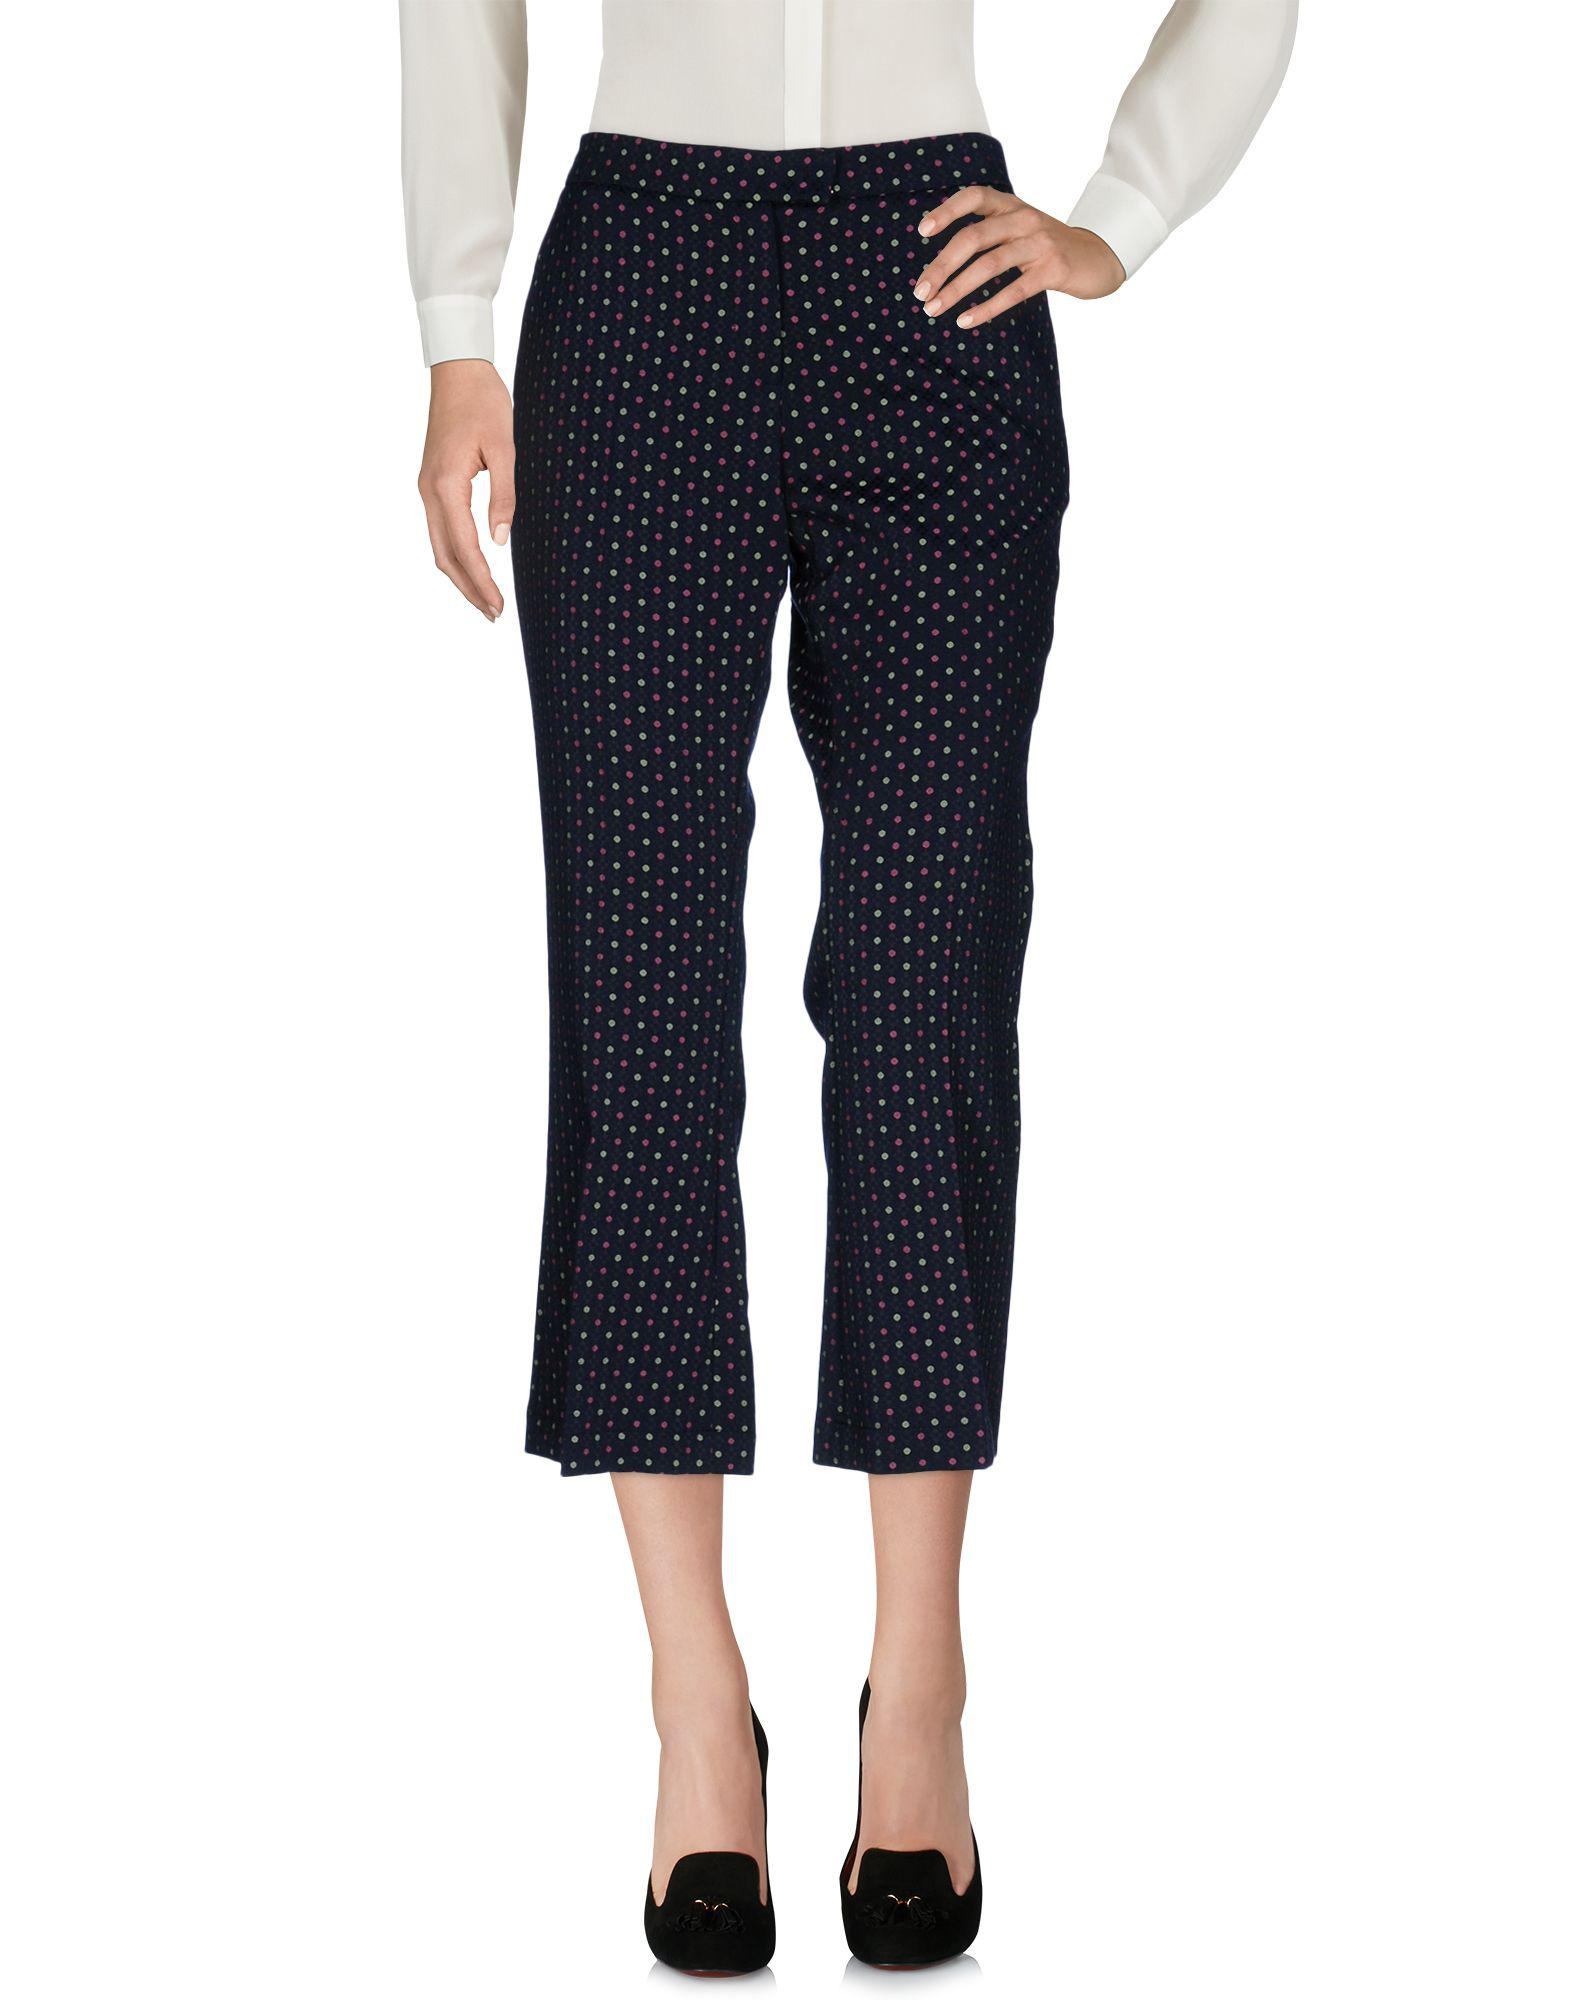 TROUSERS - Casual trousers Collection Privée Finishline Cheap Price Clearance 100% Original Wide Range Of Official Site For Sale sGLOYsc04c